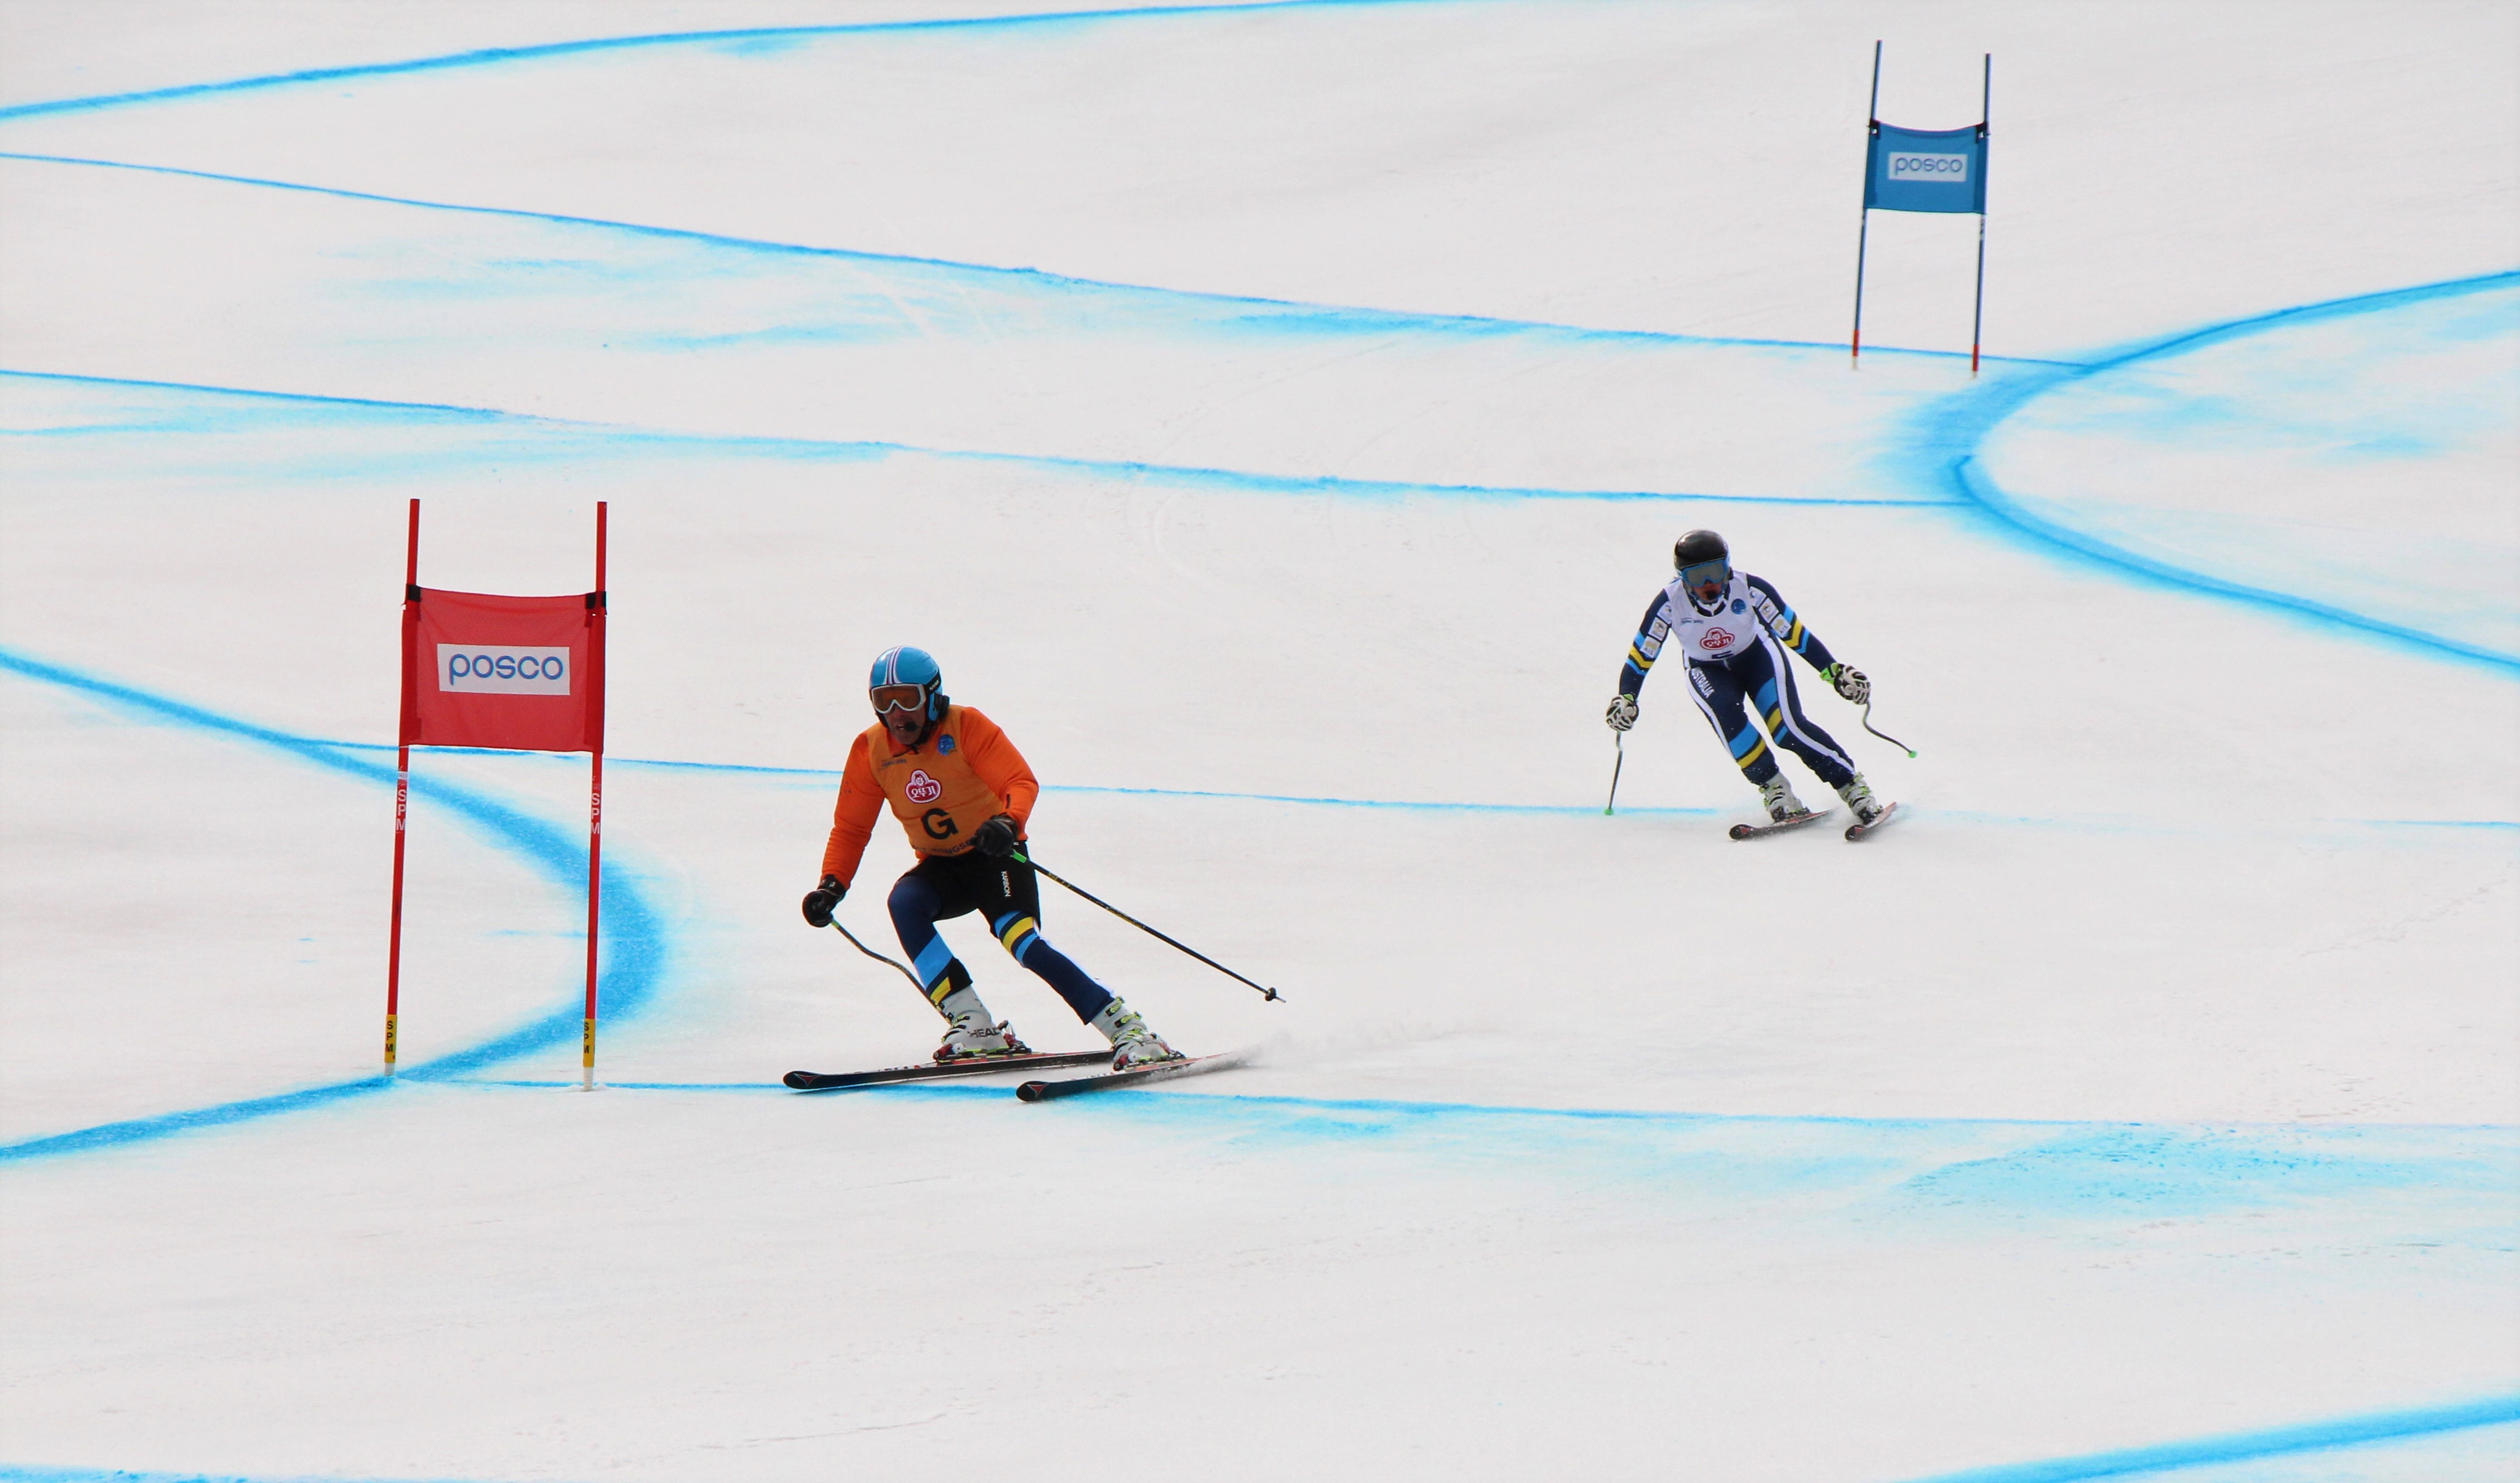 Australia's medal haul continues in PyeongChang